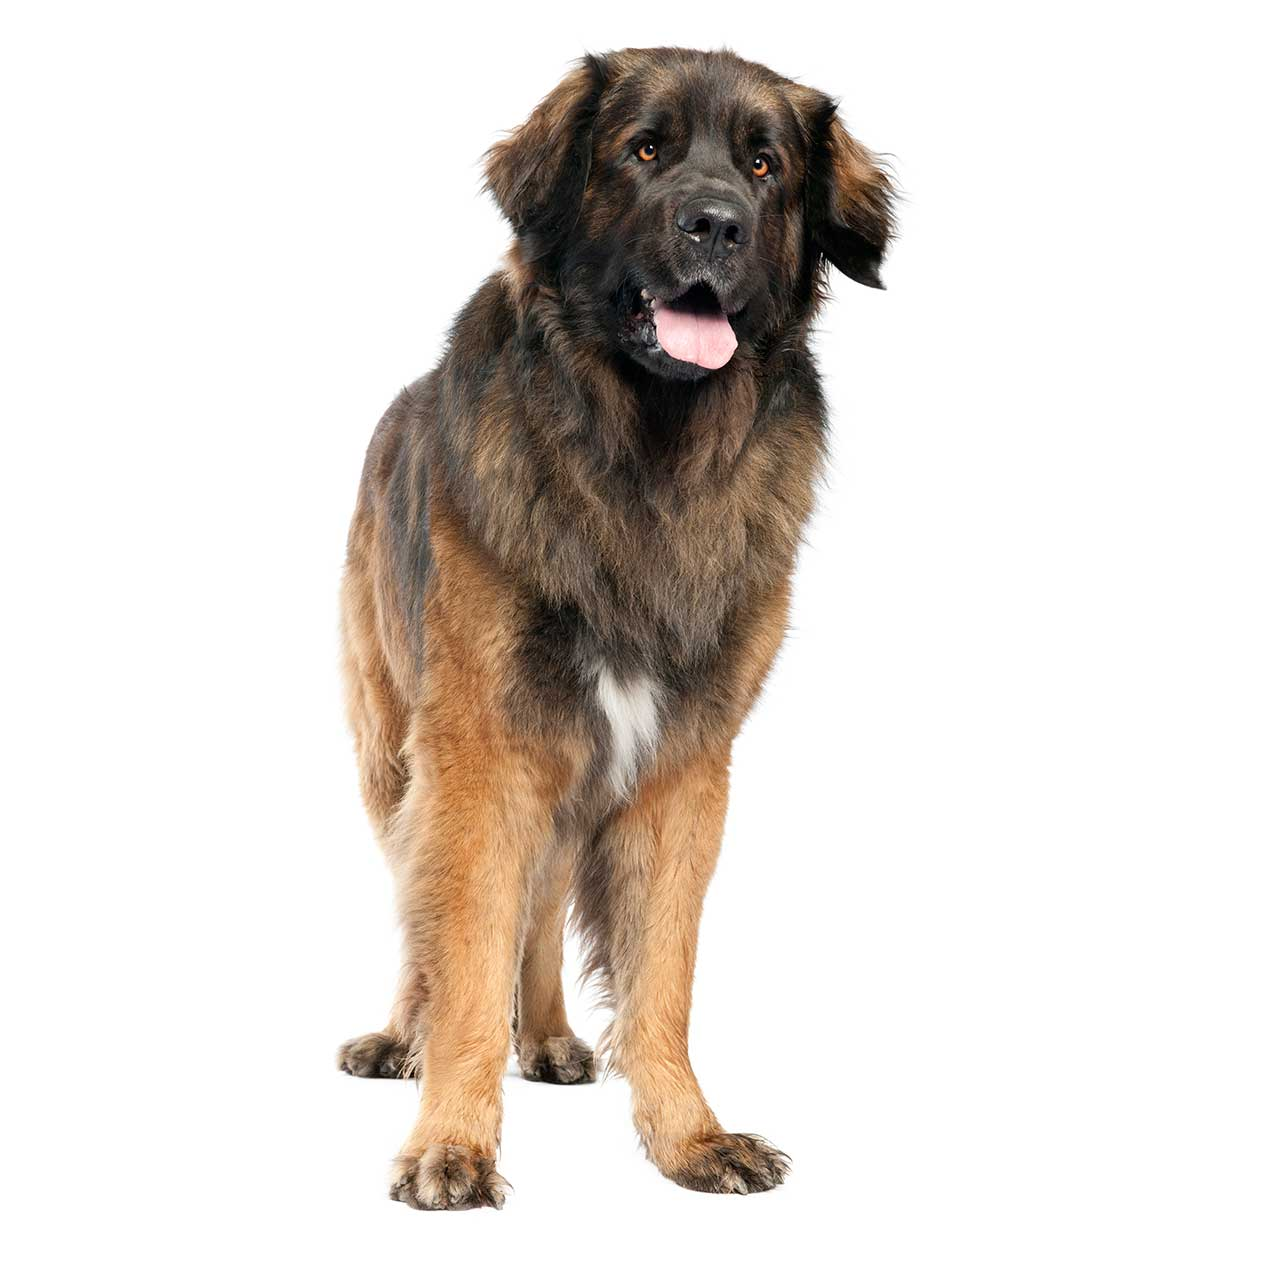 Leonberger Dog Breed 187 Everything About Leonbergers